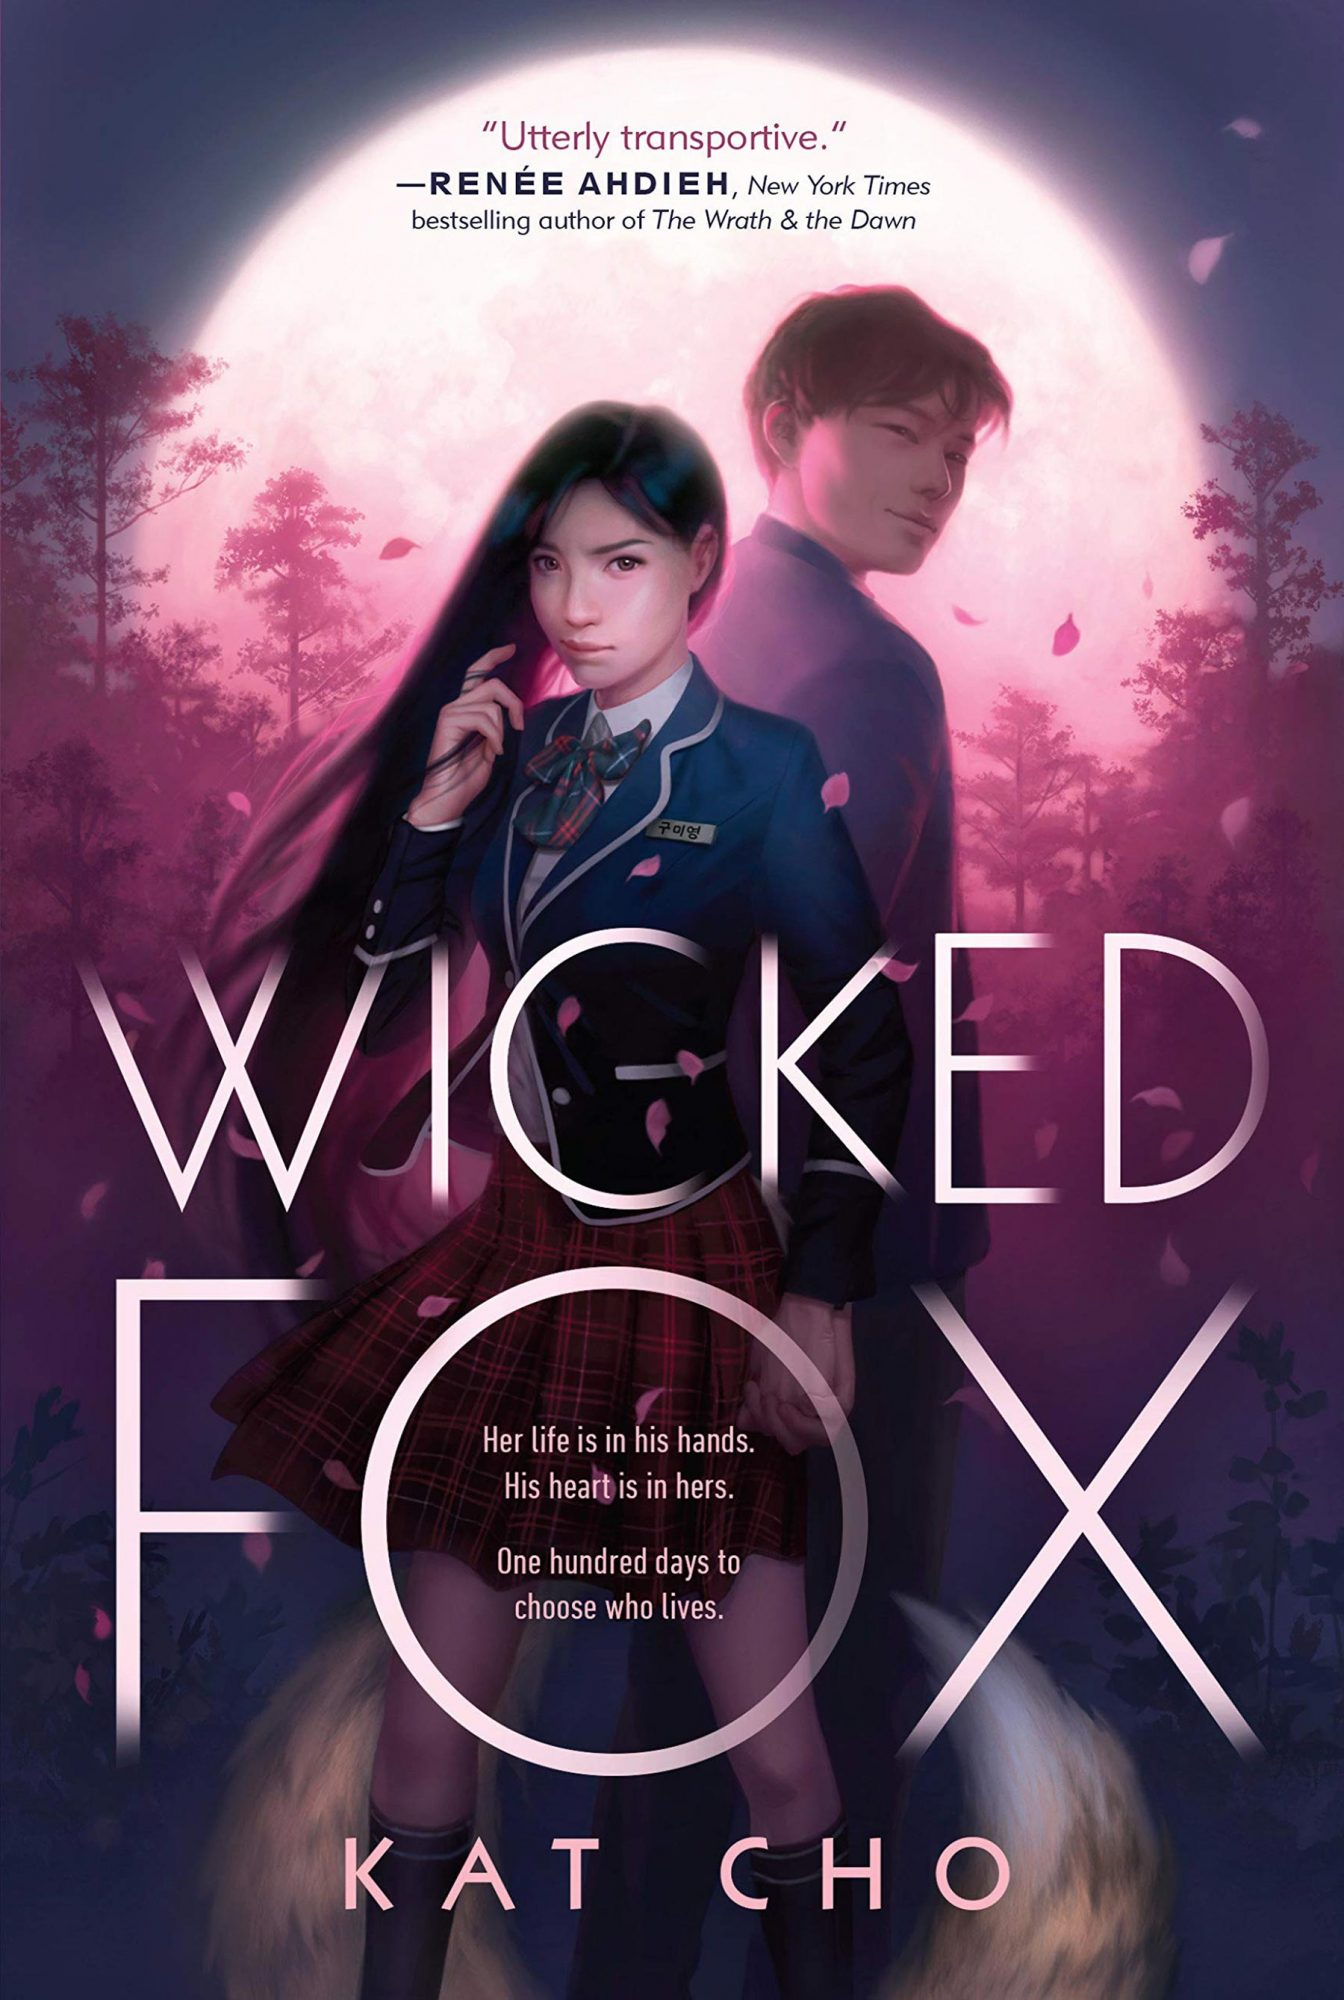 Wicked Fox by Kat ChoPublisher: G.P. Putnam's Sons Books for Young Readers